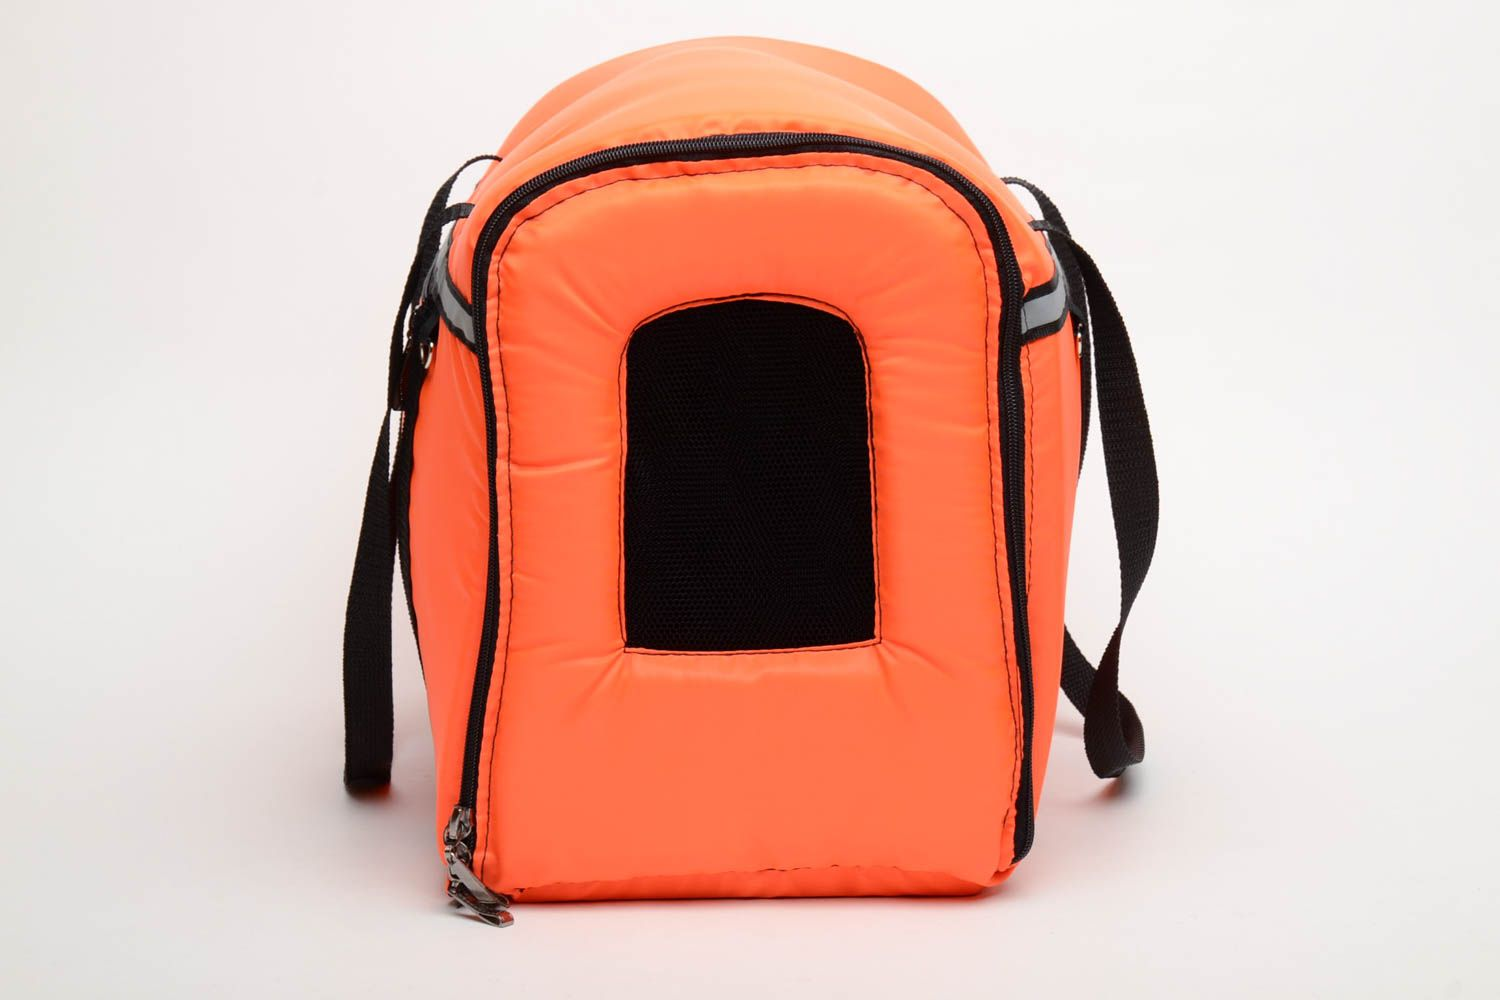 Carry bag for pets photo 2